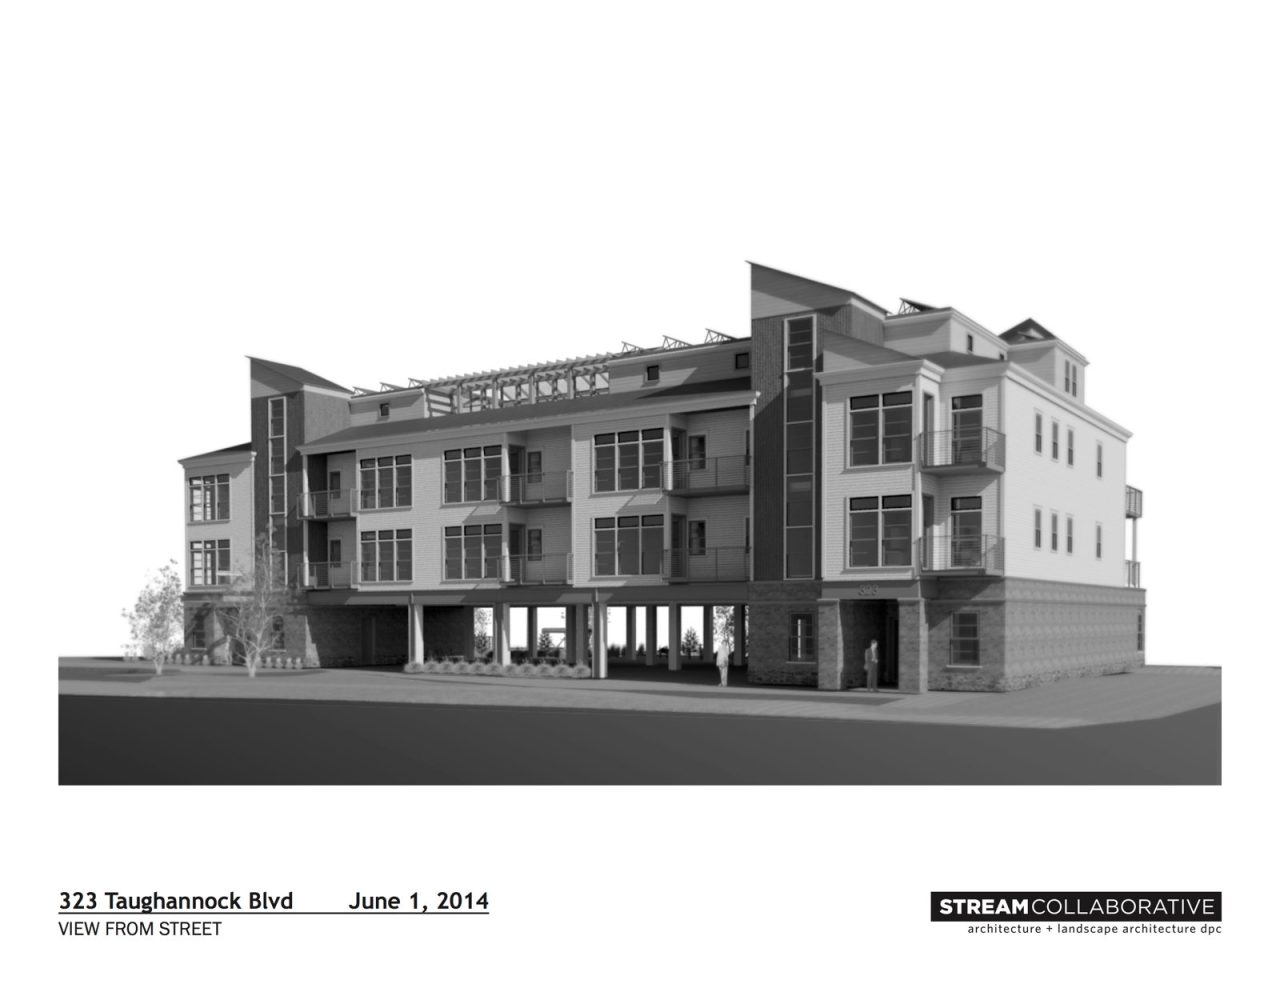 323 Taughannock Boulevard - SPR Application Submission - 06-02-14